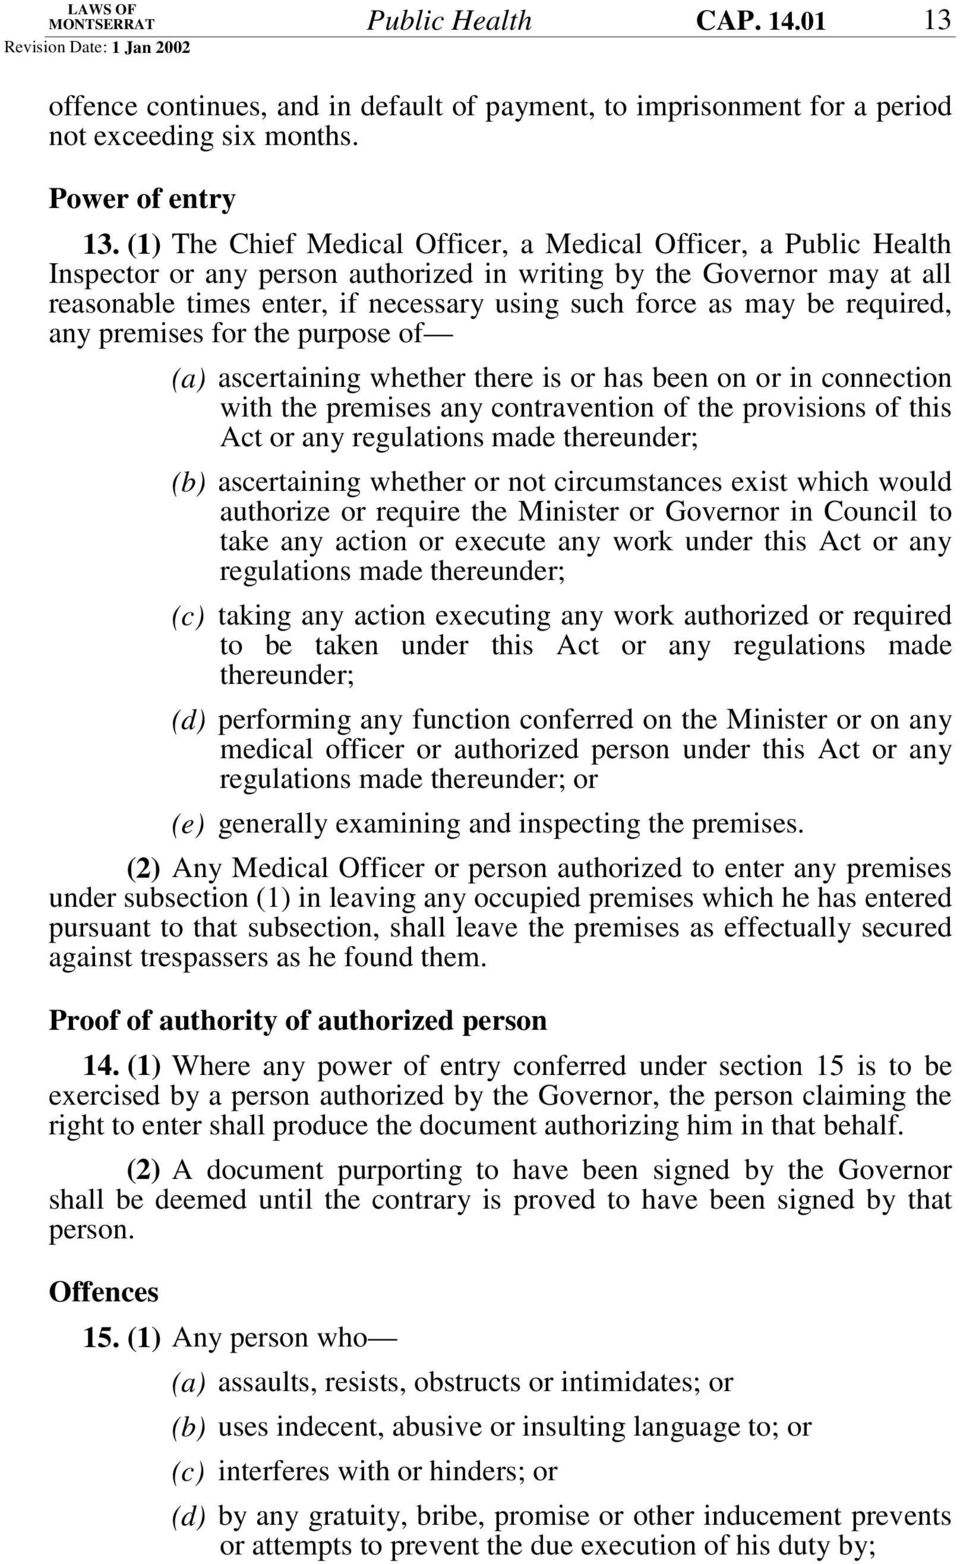 be required, any premises for the purpose of (a) ascertaining whether there is or has been on or in connection with the premises any contravention of the provisions of this Act or any regulations